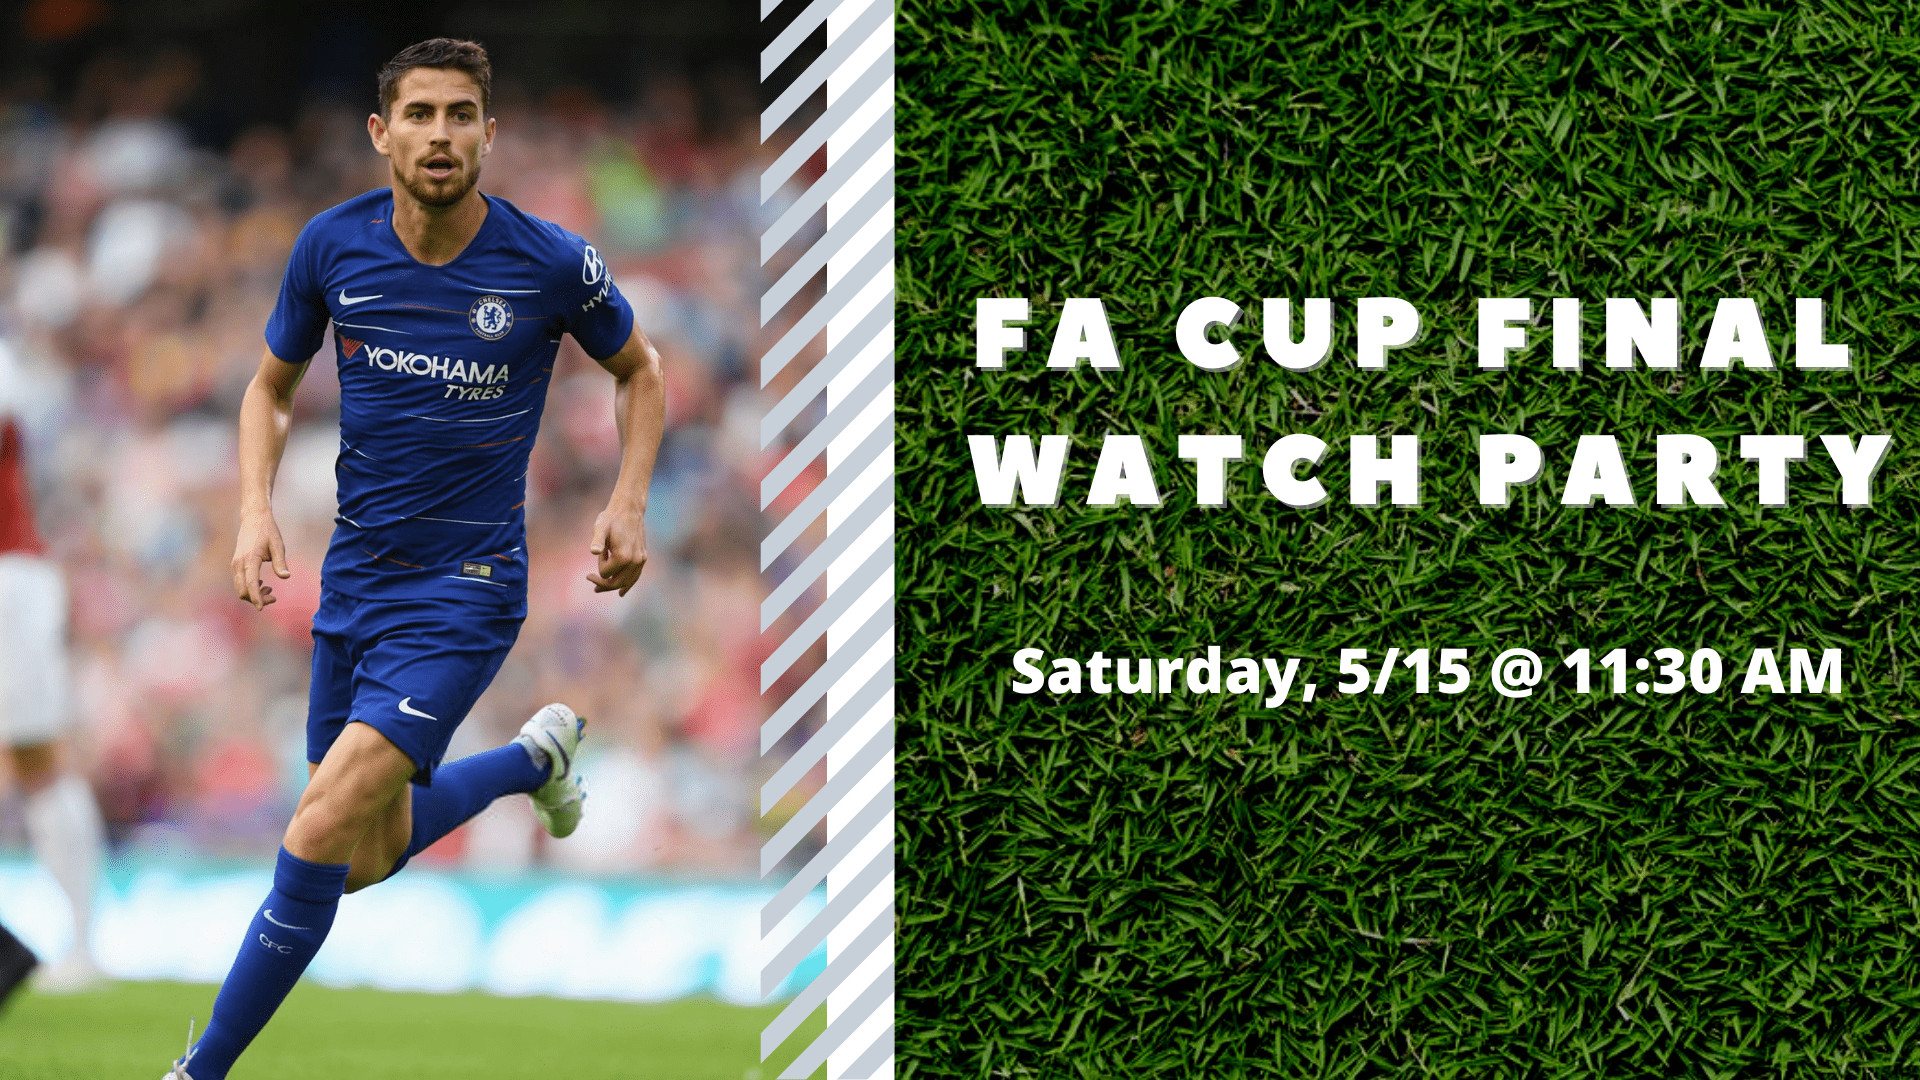 Promo image of FA Cup Final Watch Party